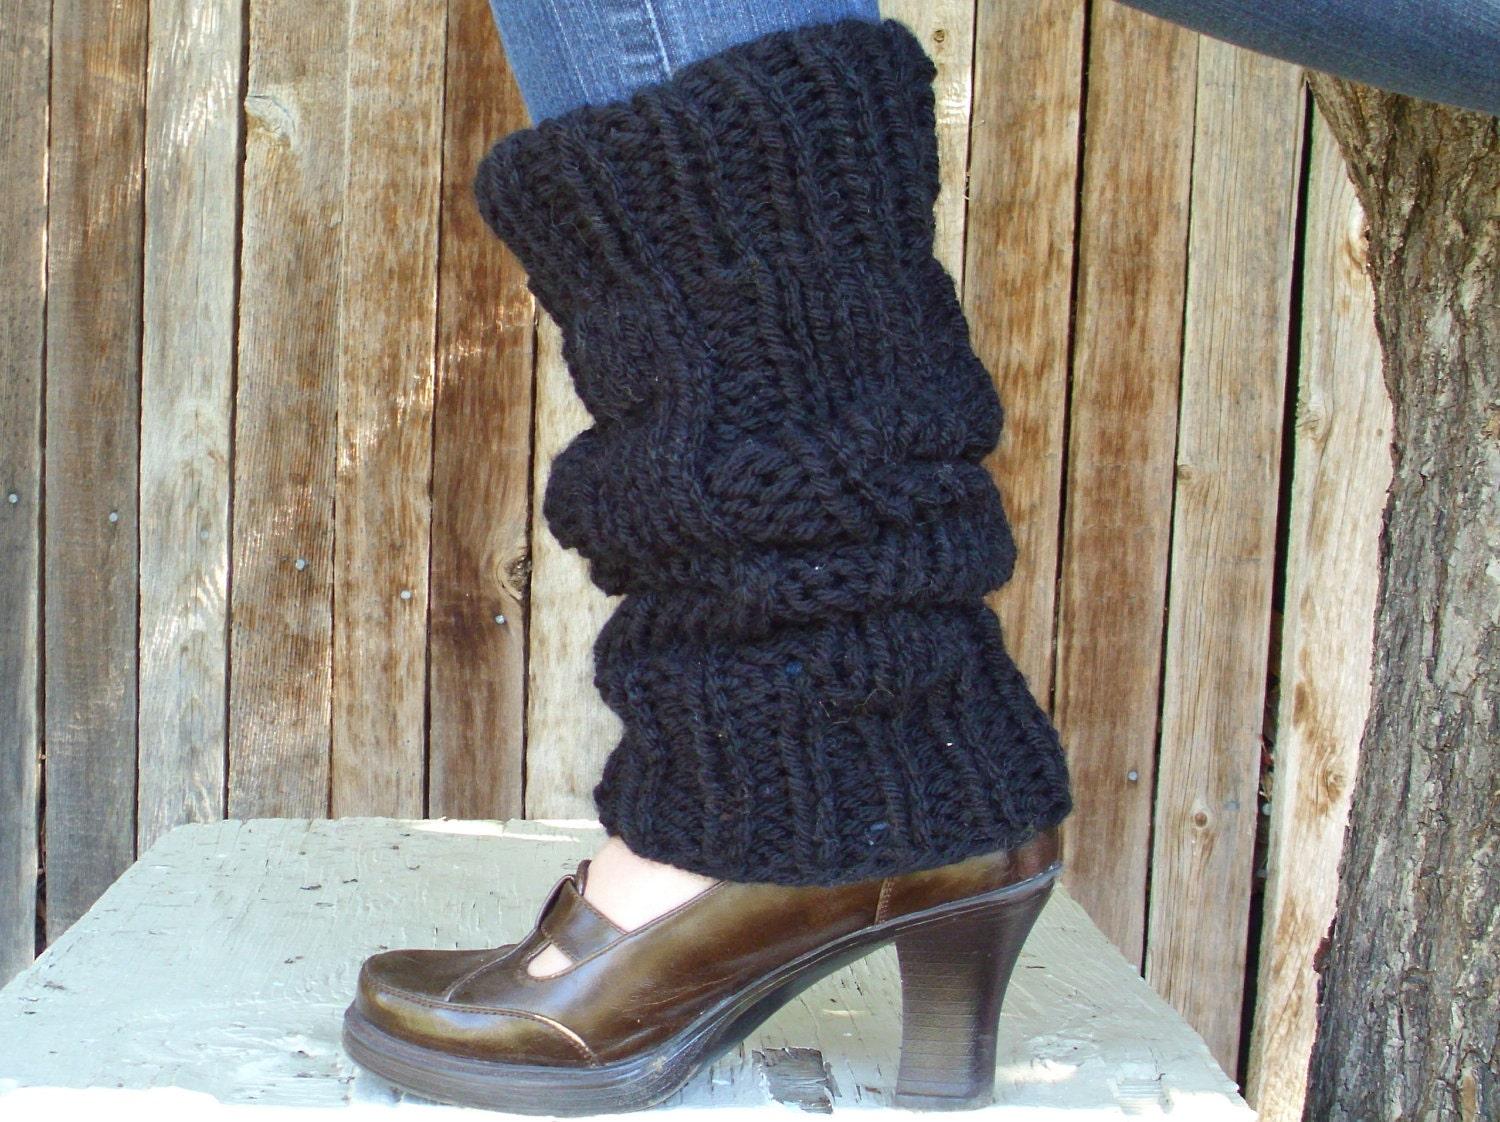 Knitting Pattern Leg Warmers Bulky Yarn : Black Leg Warmers Hand Knitted Chunky Leg Warmers